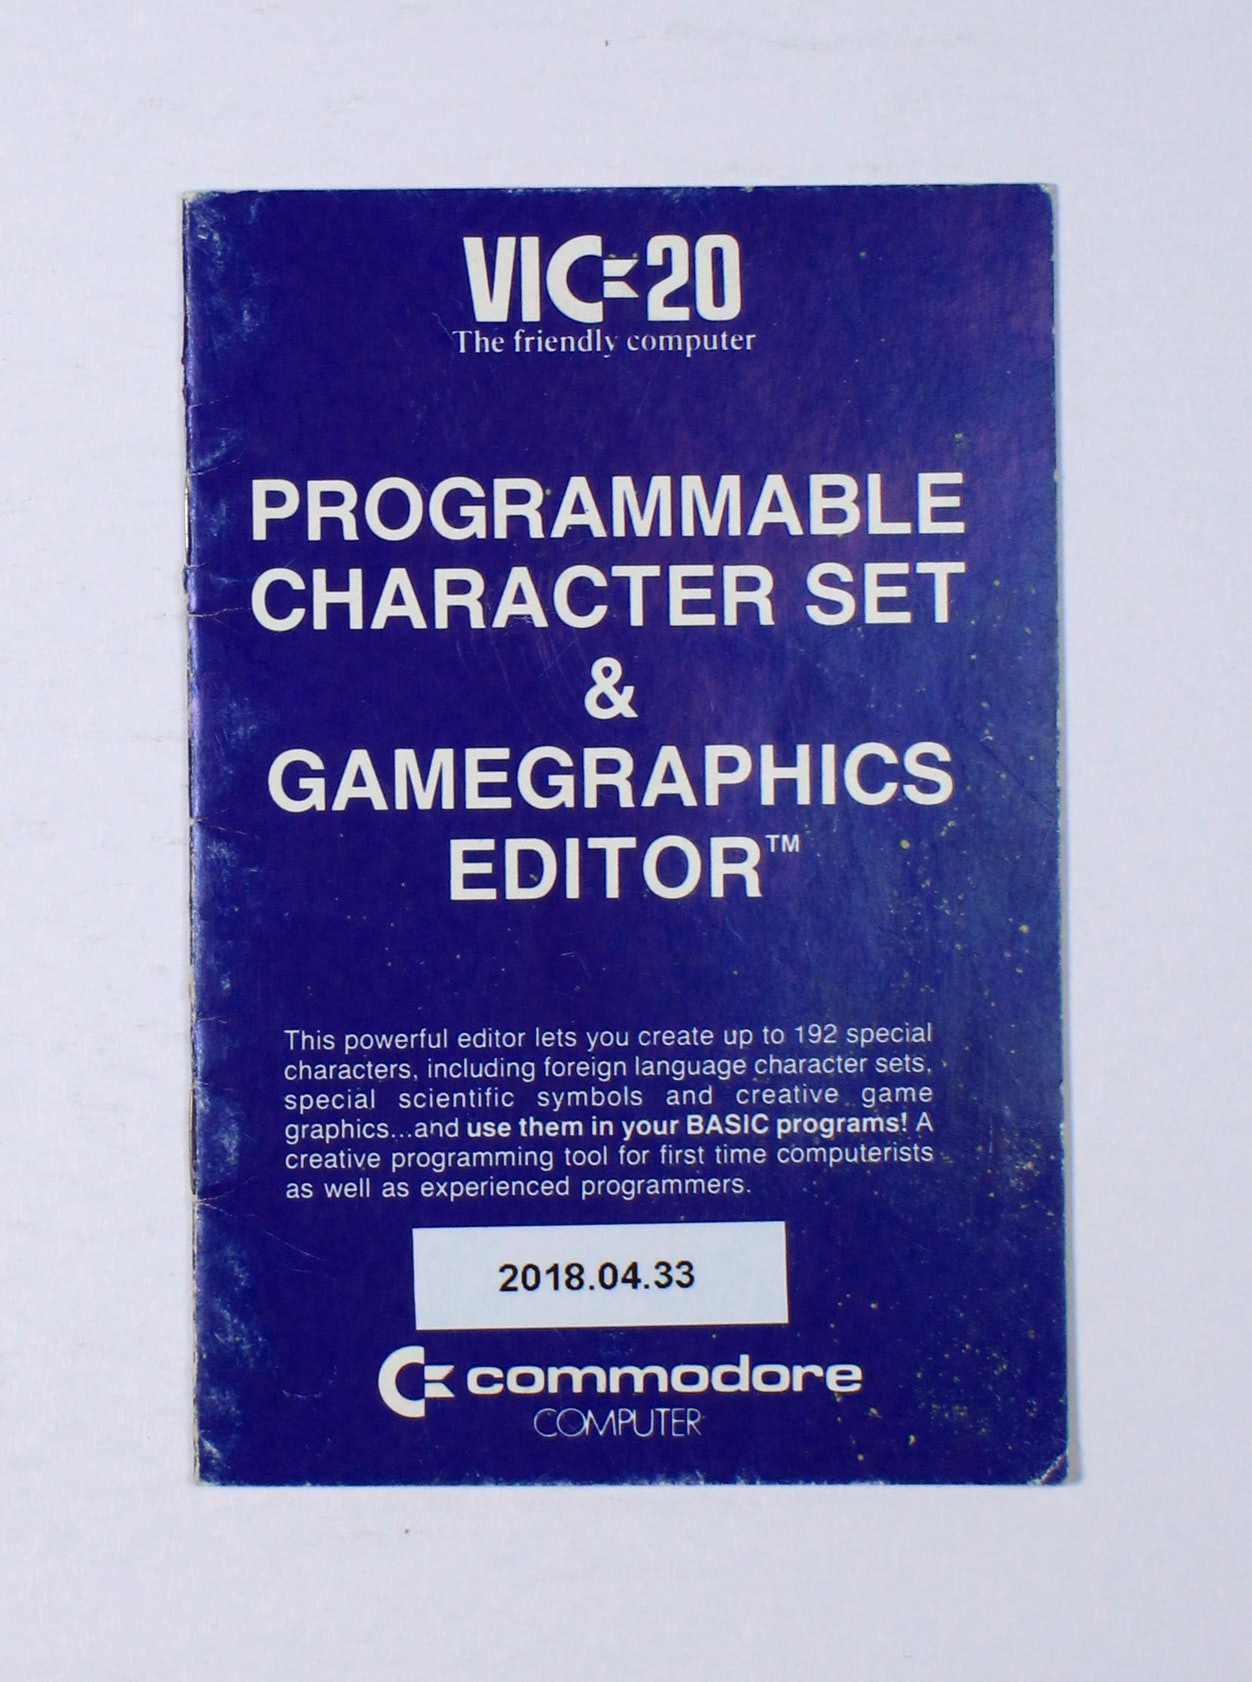 VIC-20 Programmable Character Set & Gamegraphics Editor